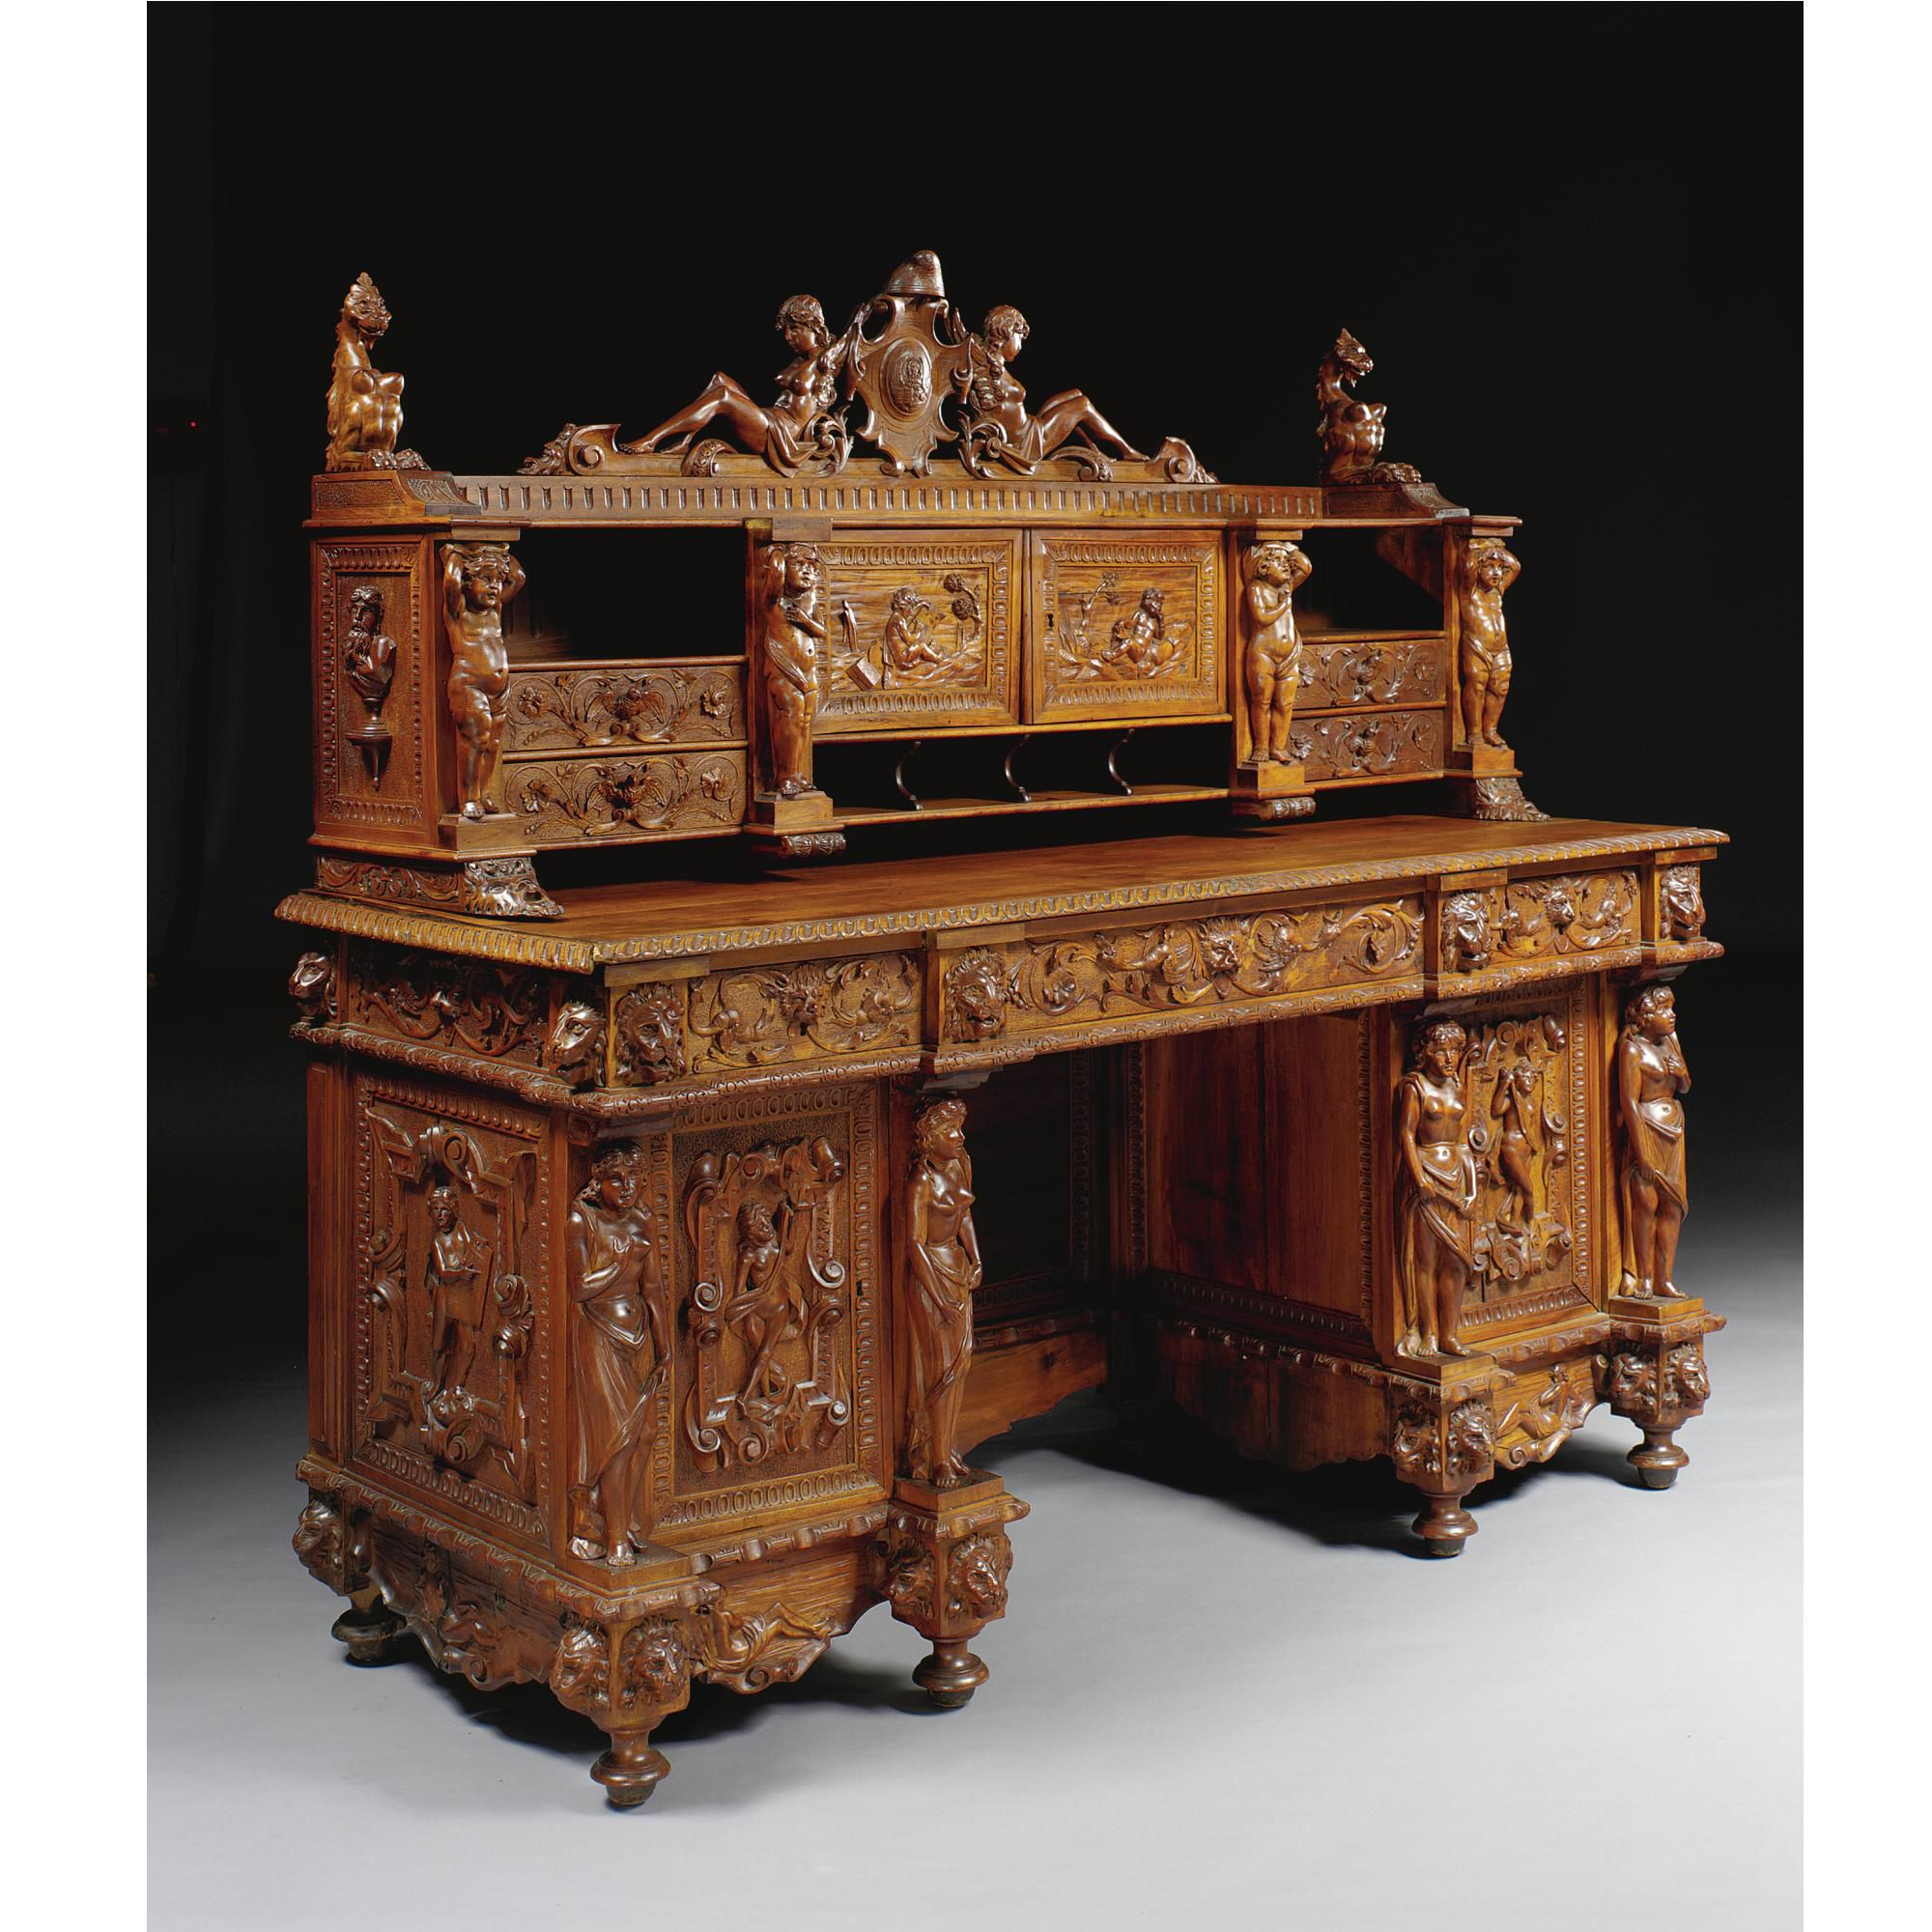 A north italian carved walnut desk early th century